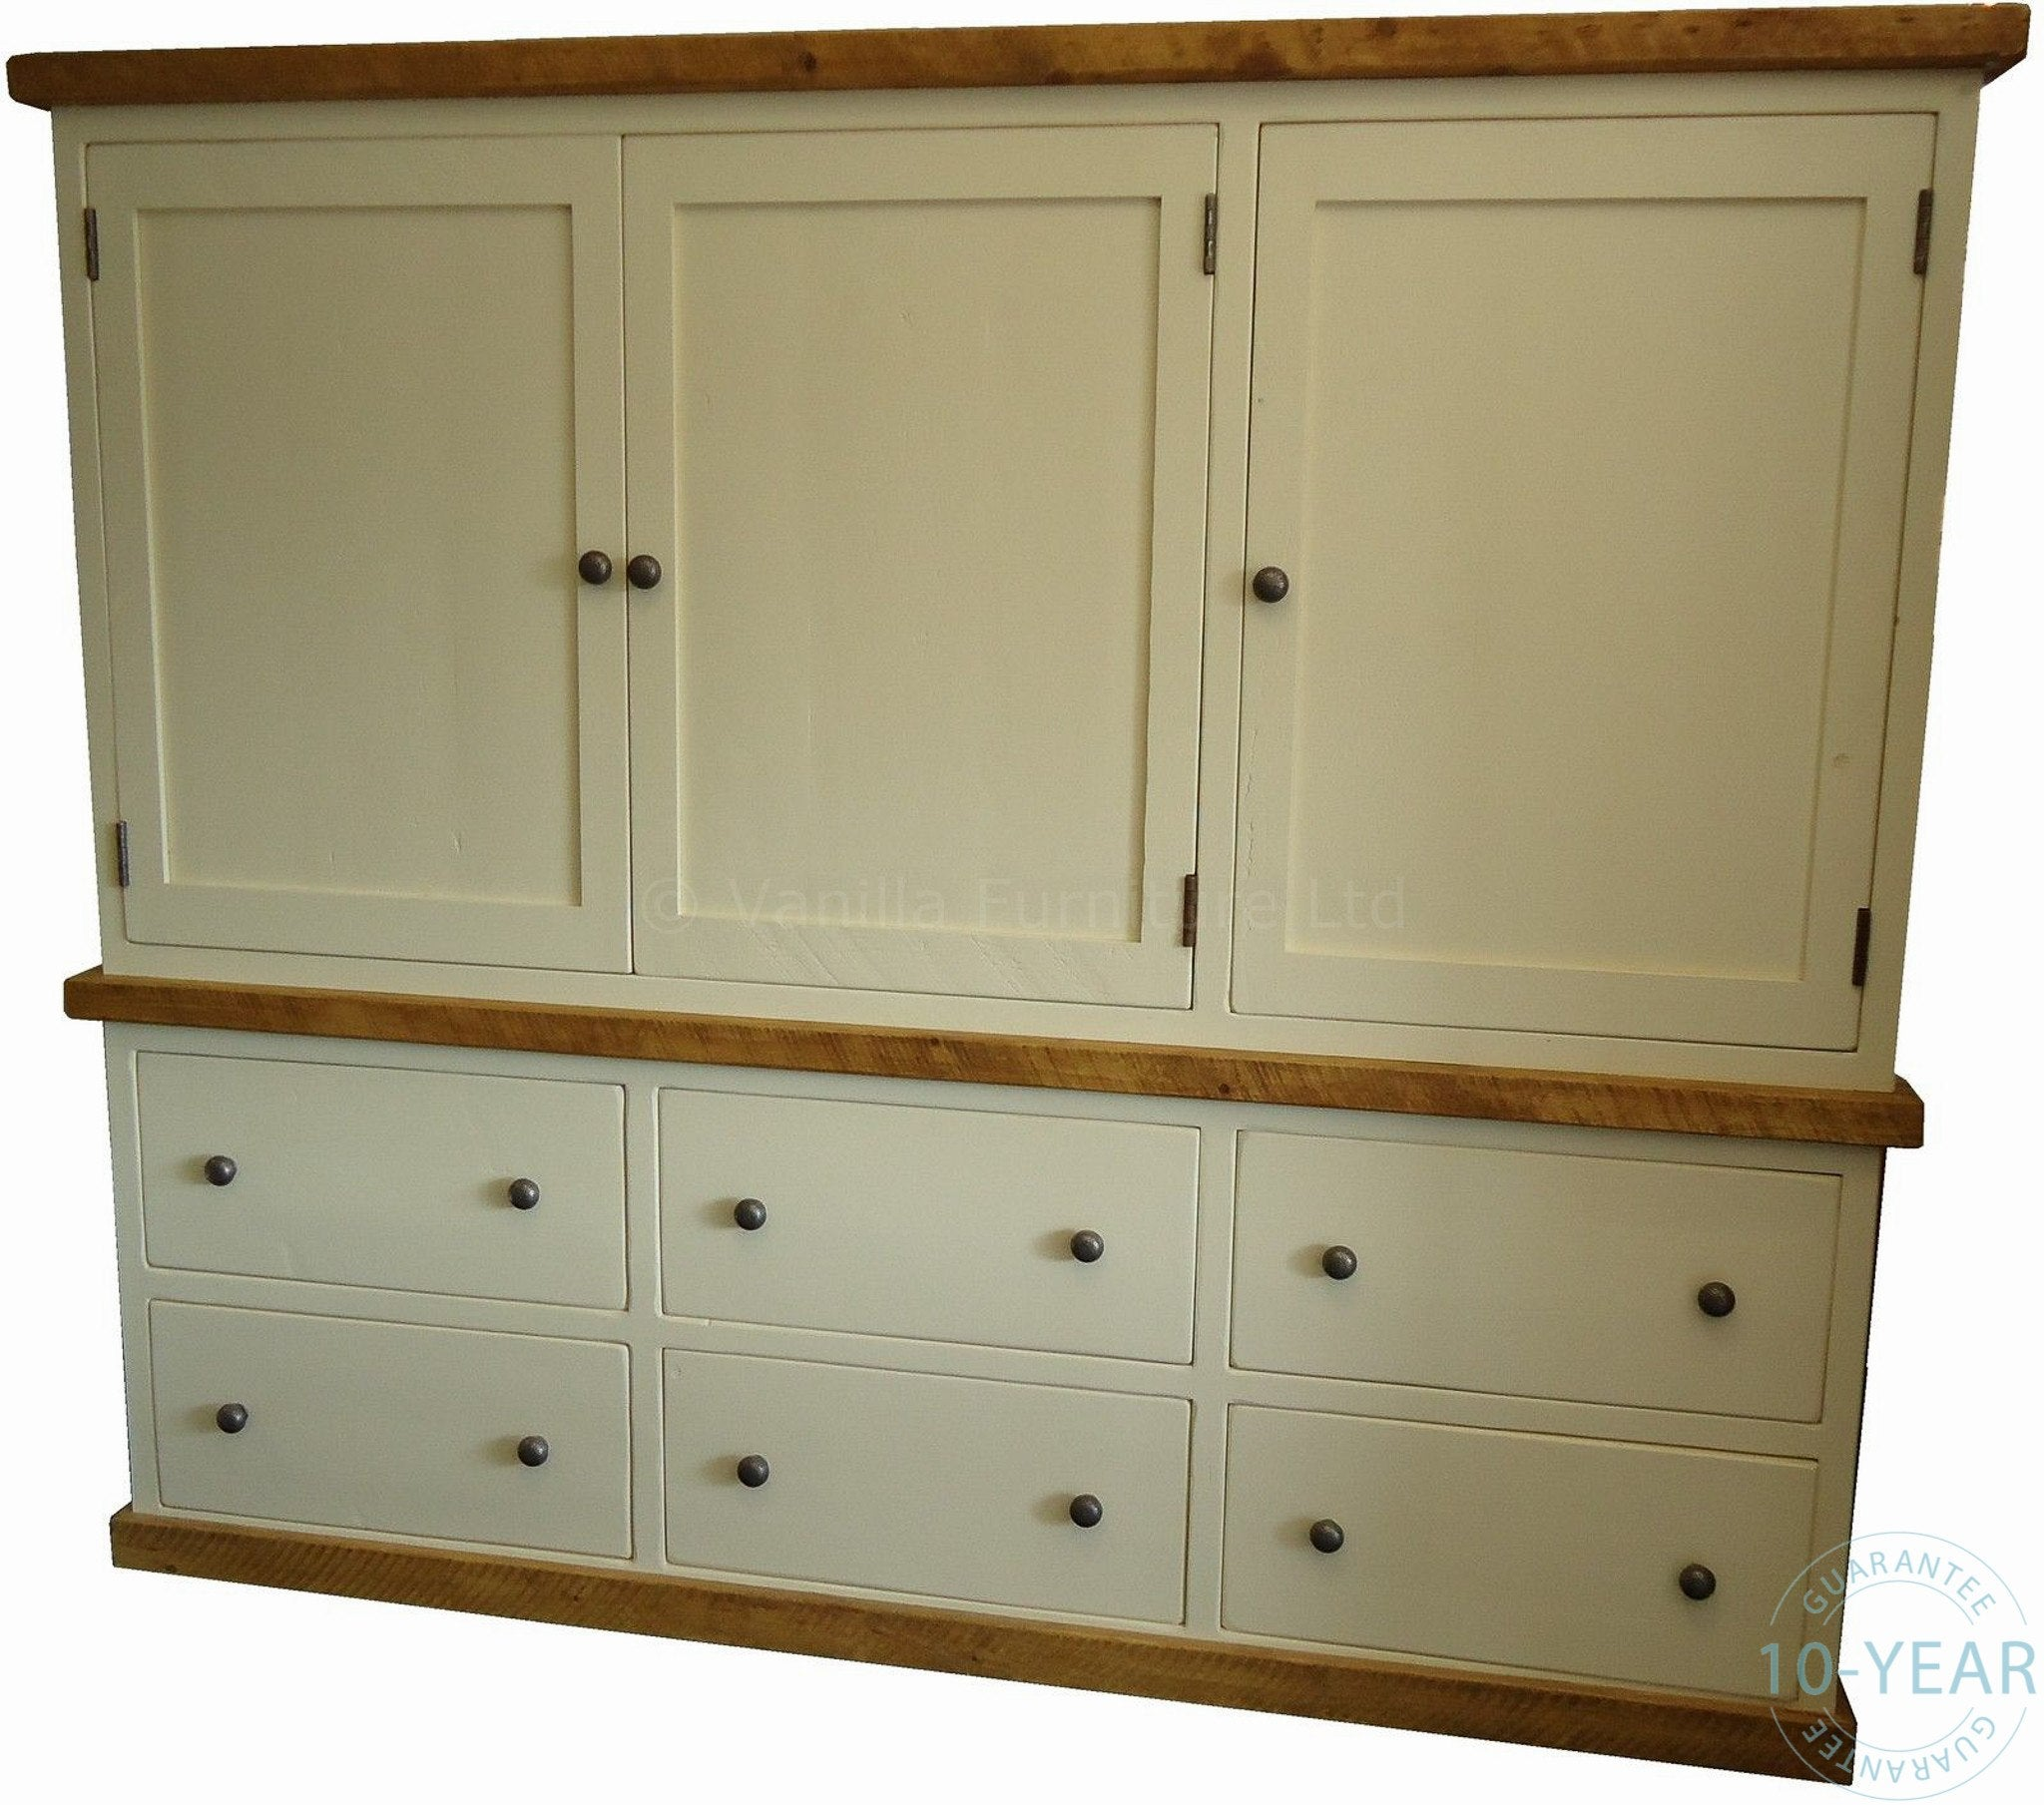 Customer Reviews & A Painted Kitchen 3 Door 6 Drawer Housekeeping Larder Cupboard ...